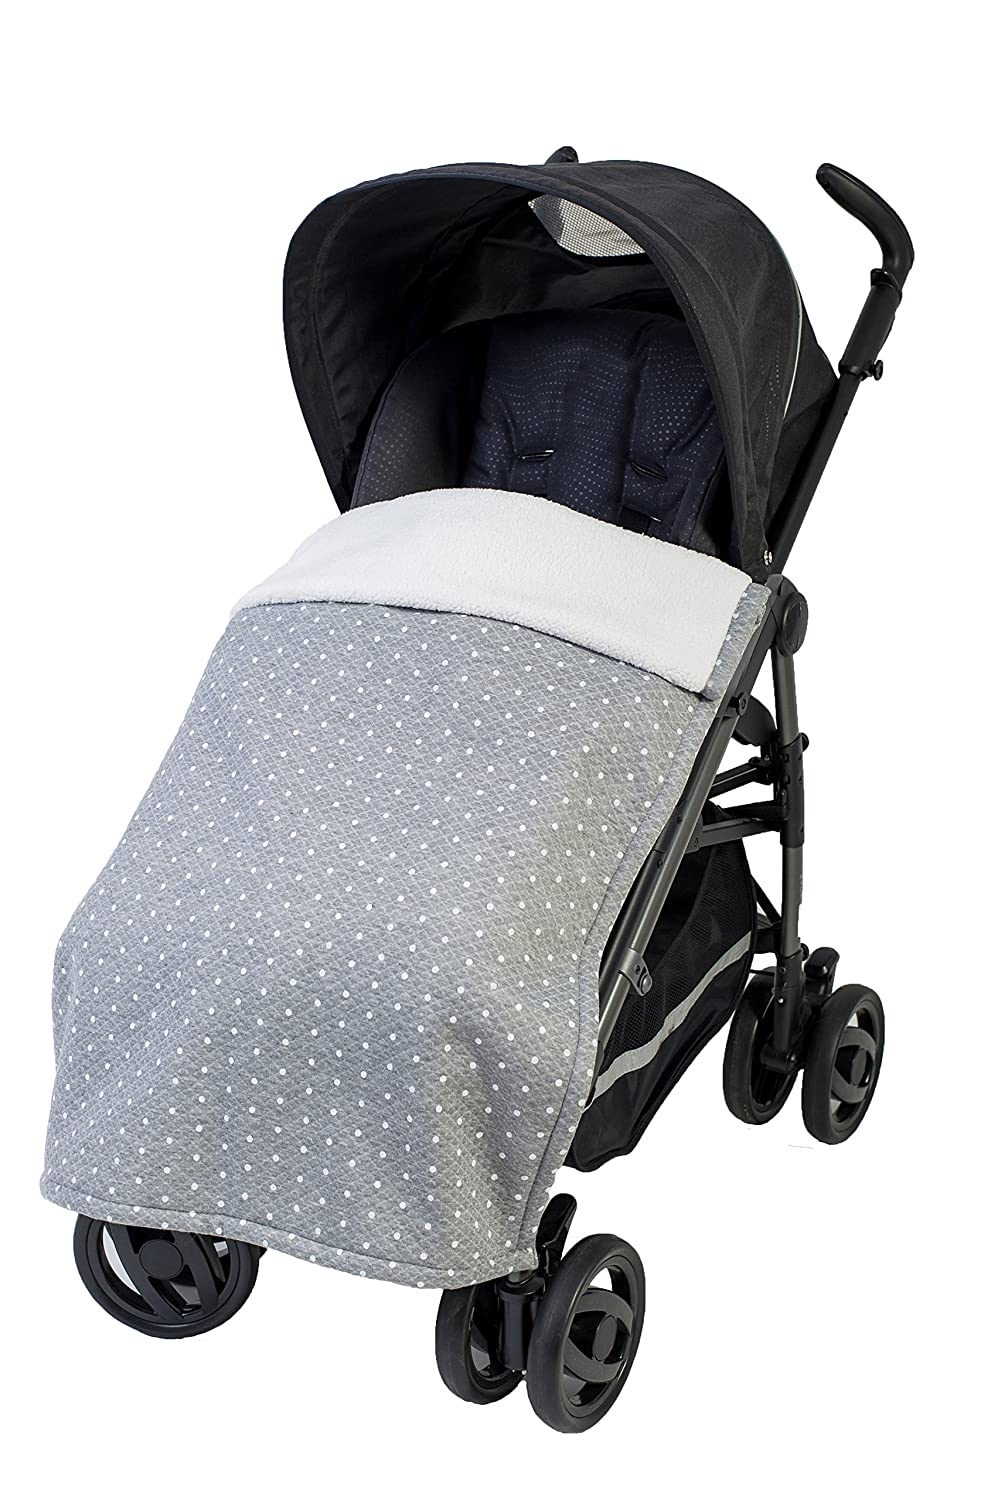 AL2415KJ-76 Winddecke f/ür Kinderwagen und Buggy Downtown Kollektion hellgrau